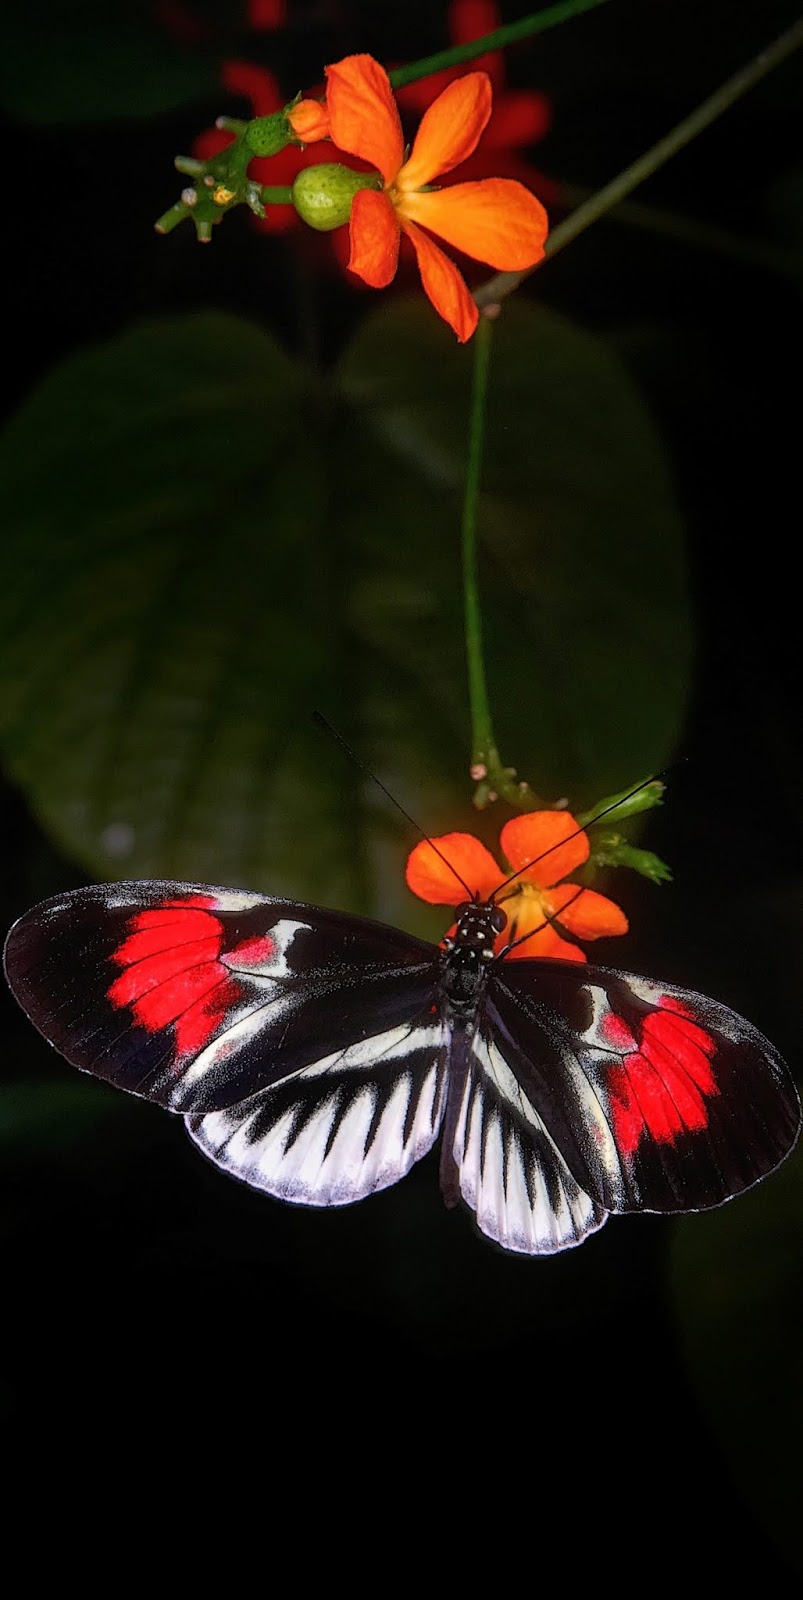 A colorful butterfly on a flower.